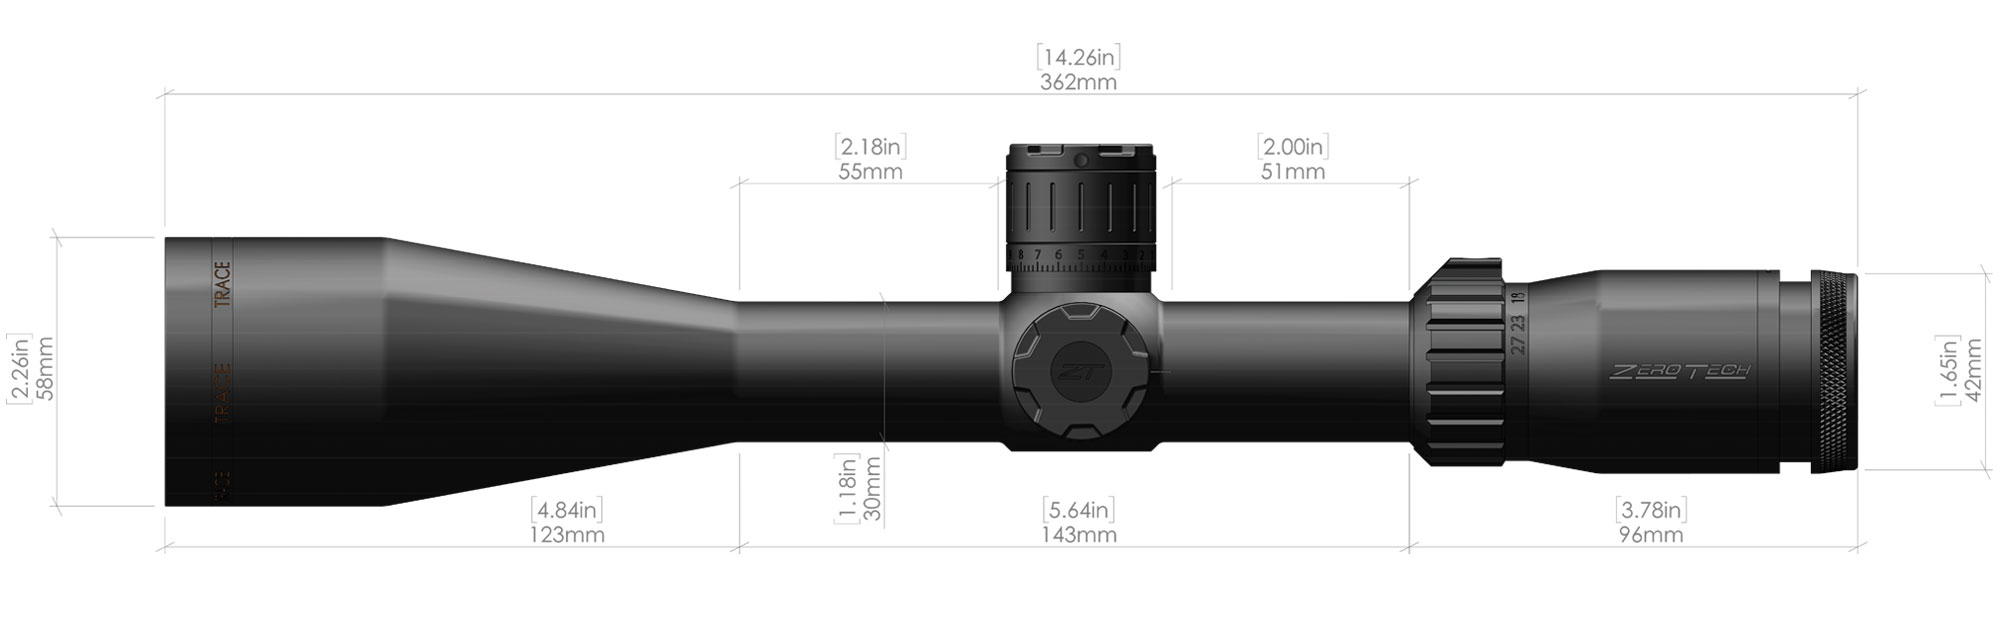 4.5-27X50mm-Trace-Riflescope-Dimensions